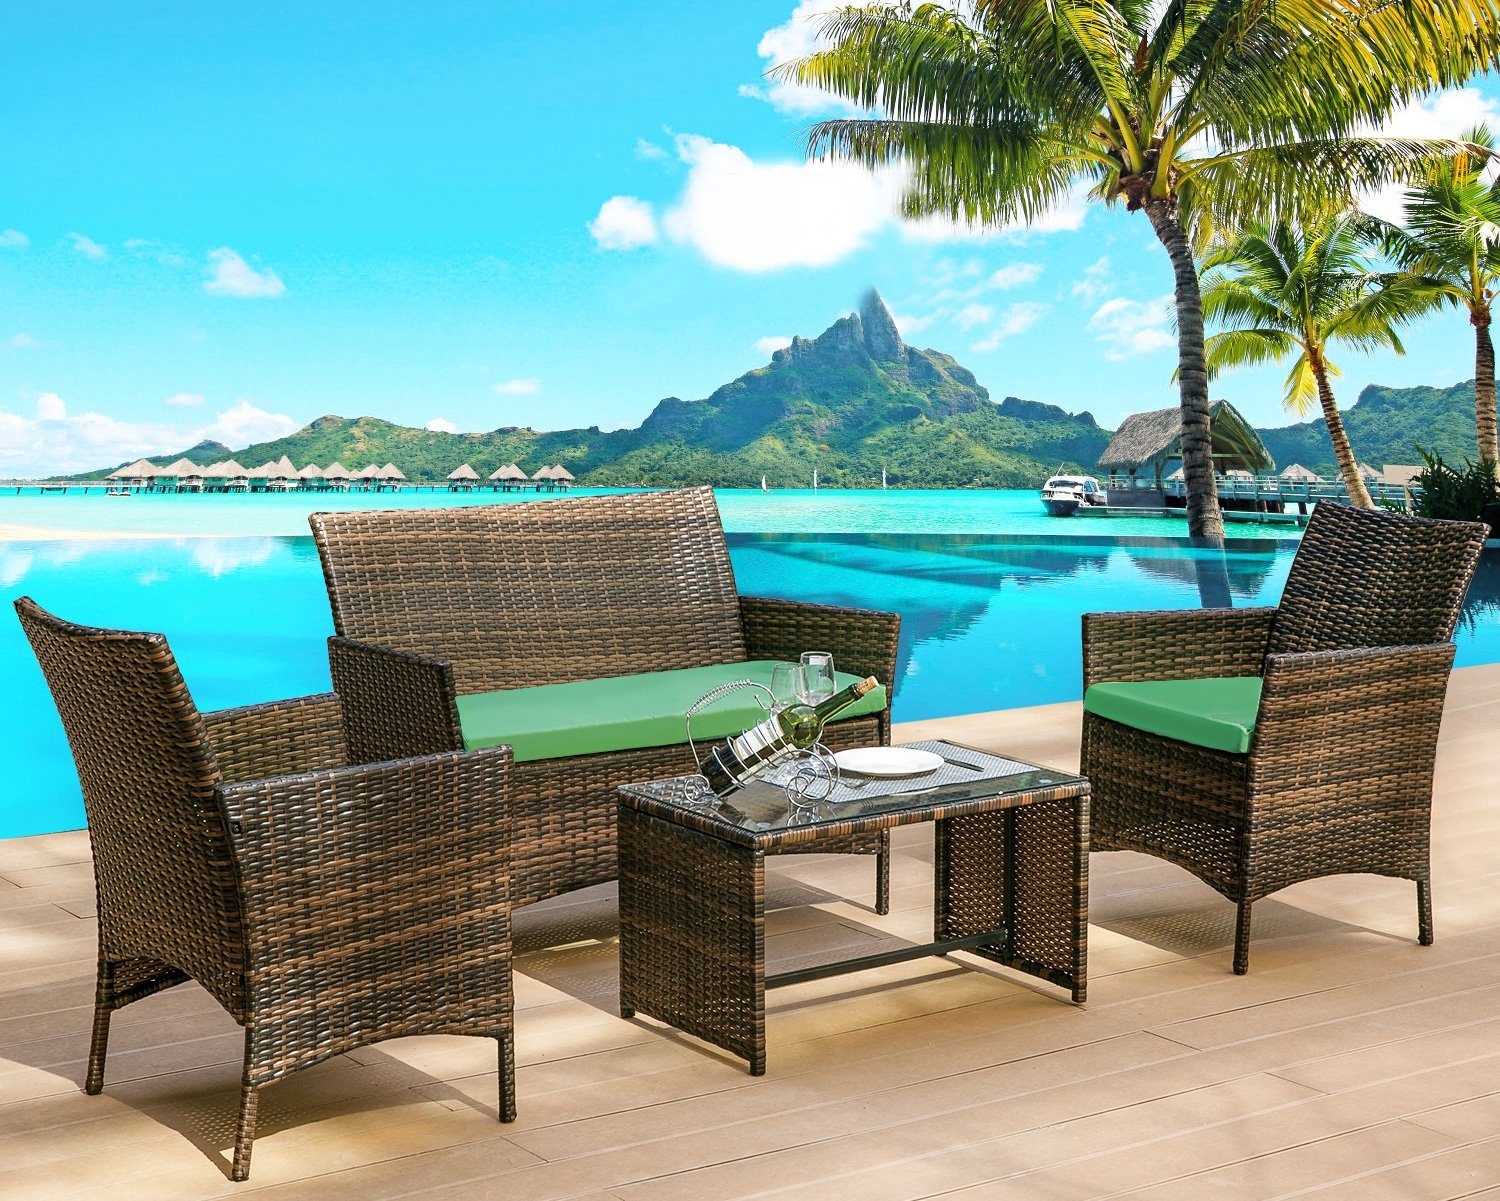 Leisure Zone 4 PC Rattan Patio Furniture Set Wicker Conversation Set Garden Lawn Outdoor Sofa Set Cushioned Seat Tempered Glass Table Top (Cushion Green) - 【Solid Construction】This 4 PC patio furniture set is crafted of powder coated metal frame and PE rattan wicker, which is weather-resistant and UV protected for lasting style to stand up to the elements. 【Ultimate Comfort】Come with thick padded seat cushions for comfort and relaxation, wide and deep chairs offer much room to seat comfortably. 【Easy to clean】This coffee table with tempered glass adds a sophisticated touch. It is easy to clean the table top if any tea or coffee drops on it. - patio-furniture, patio, conversation-sets - 81lMtg06TPL -